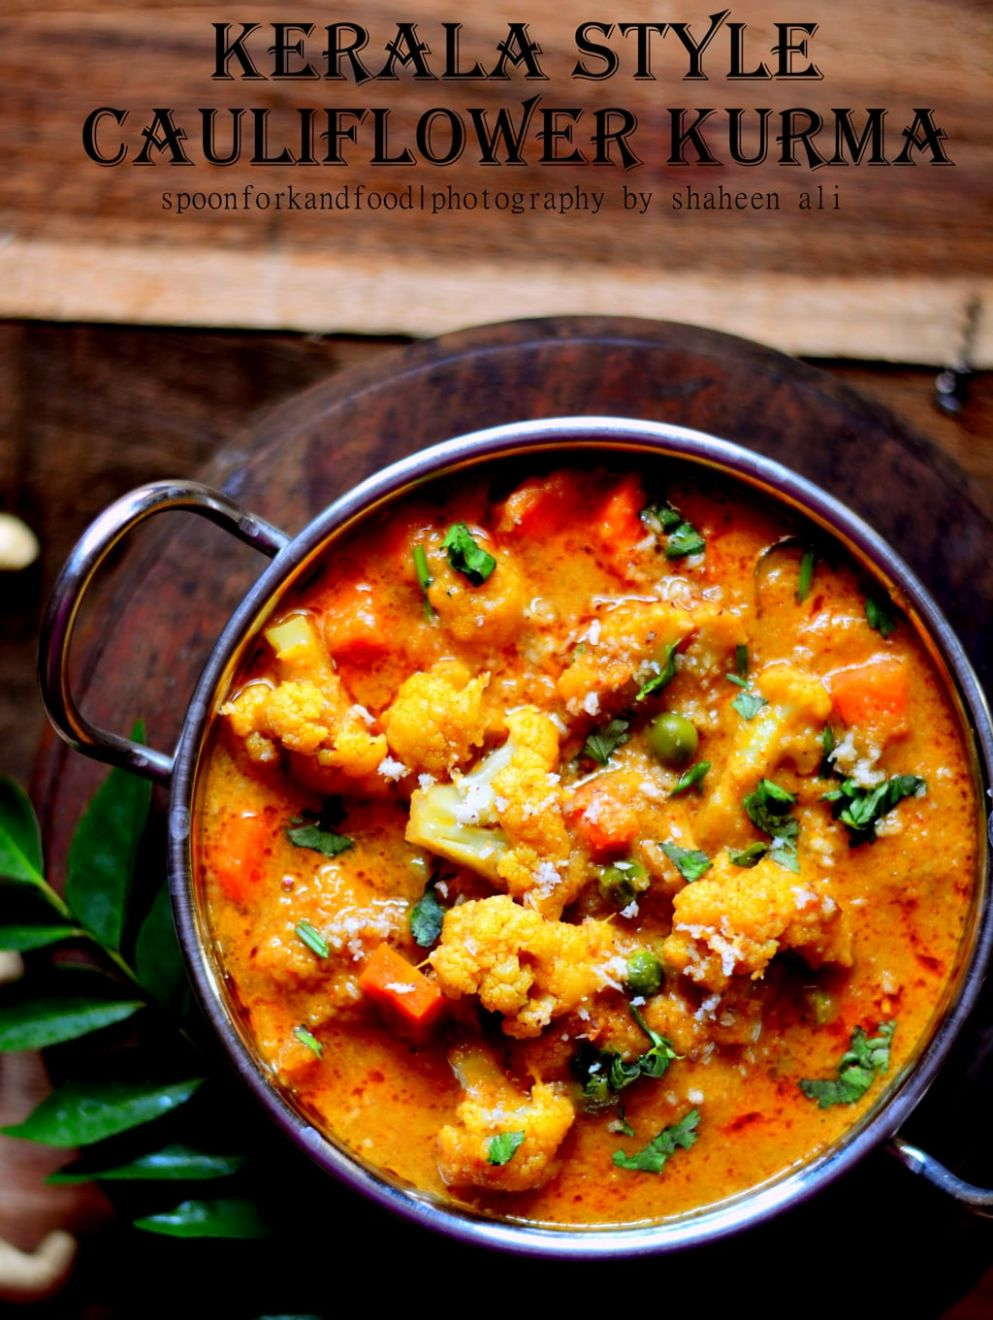 KERALA STYLE CAULIFLOWER KURMA - Vegetable Recipes Kerala